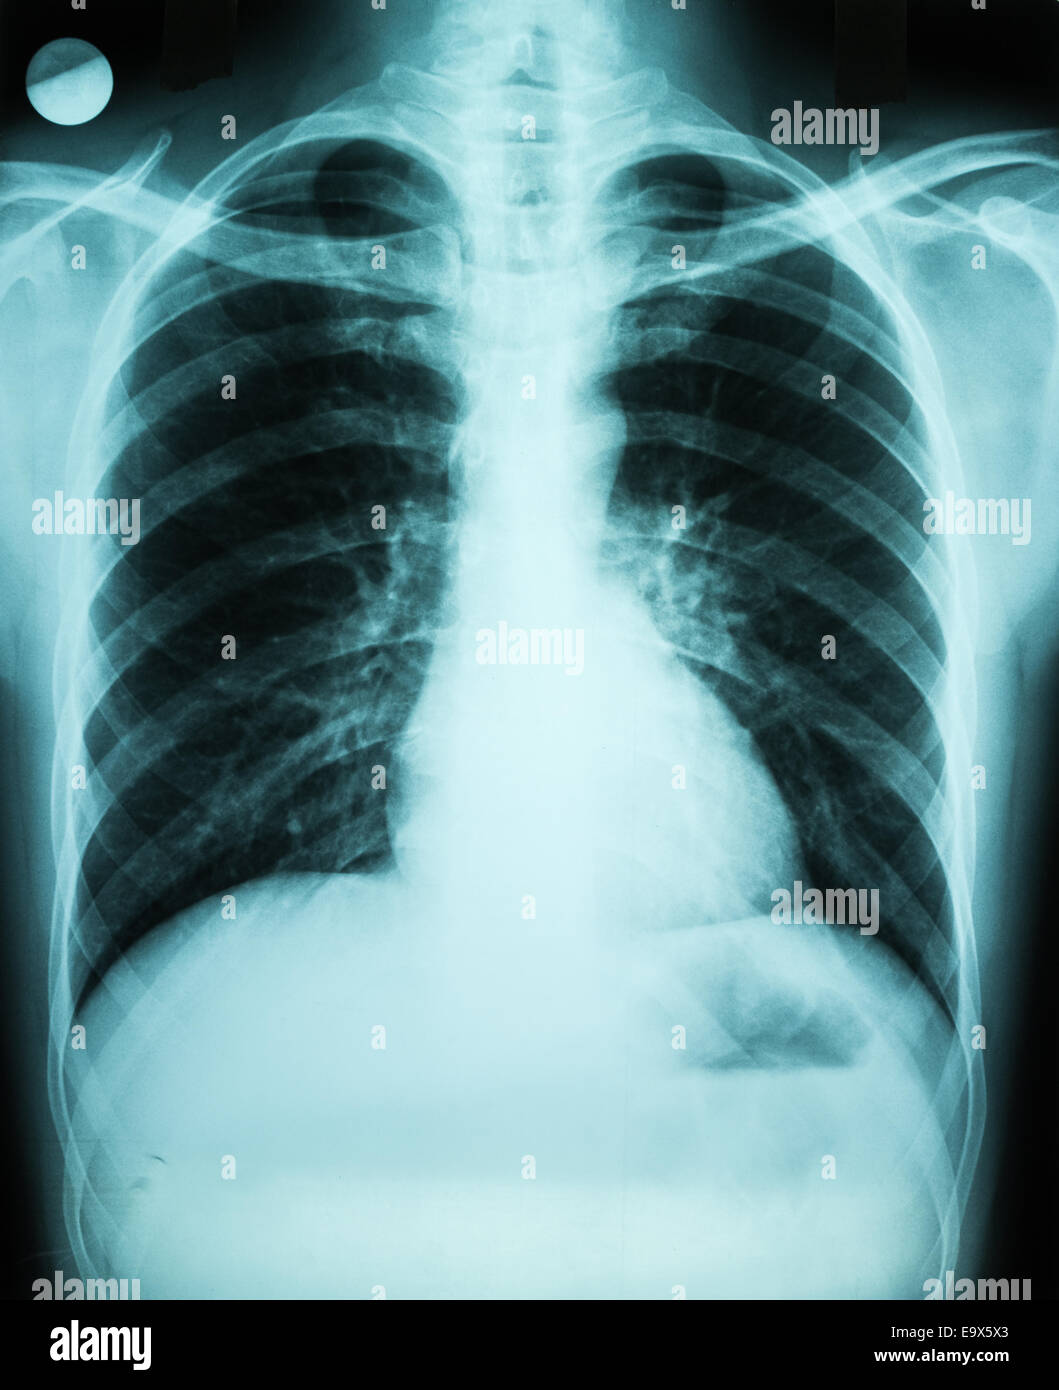 Pulmonary X-Ray Of Patient Lungs - Stock Image